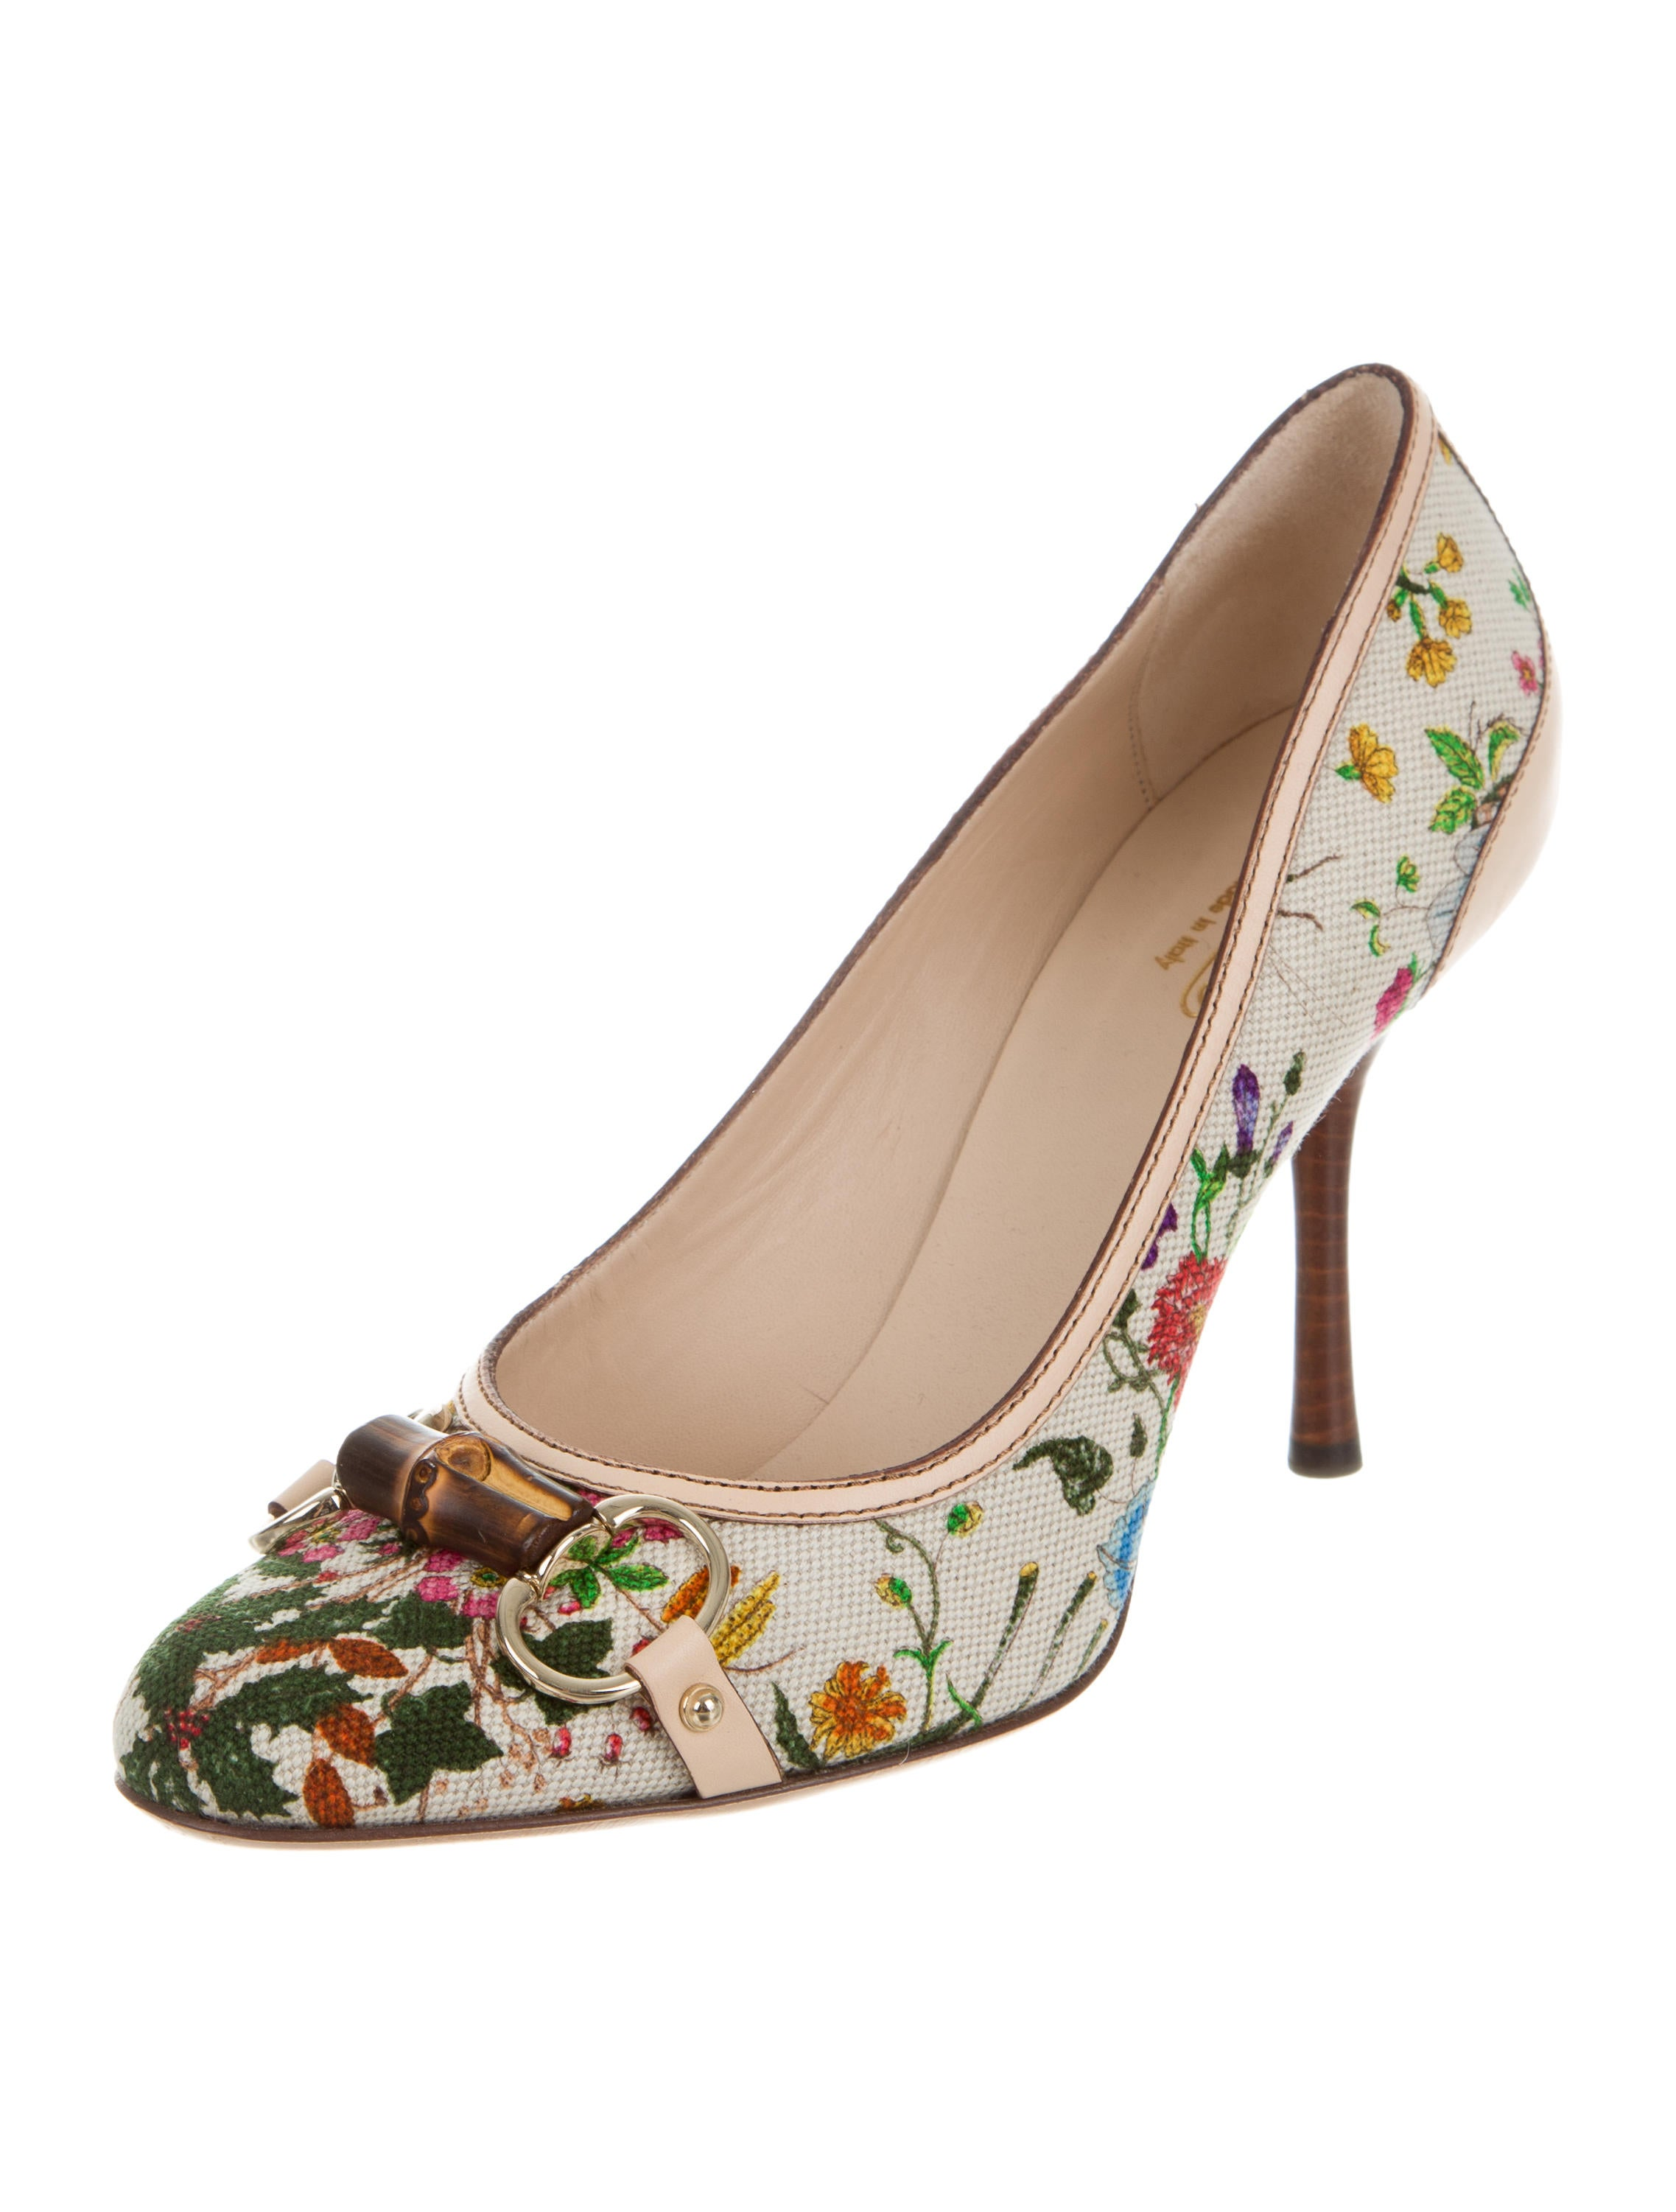 gucci flora horsebit pumps - shoes